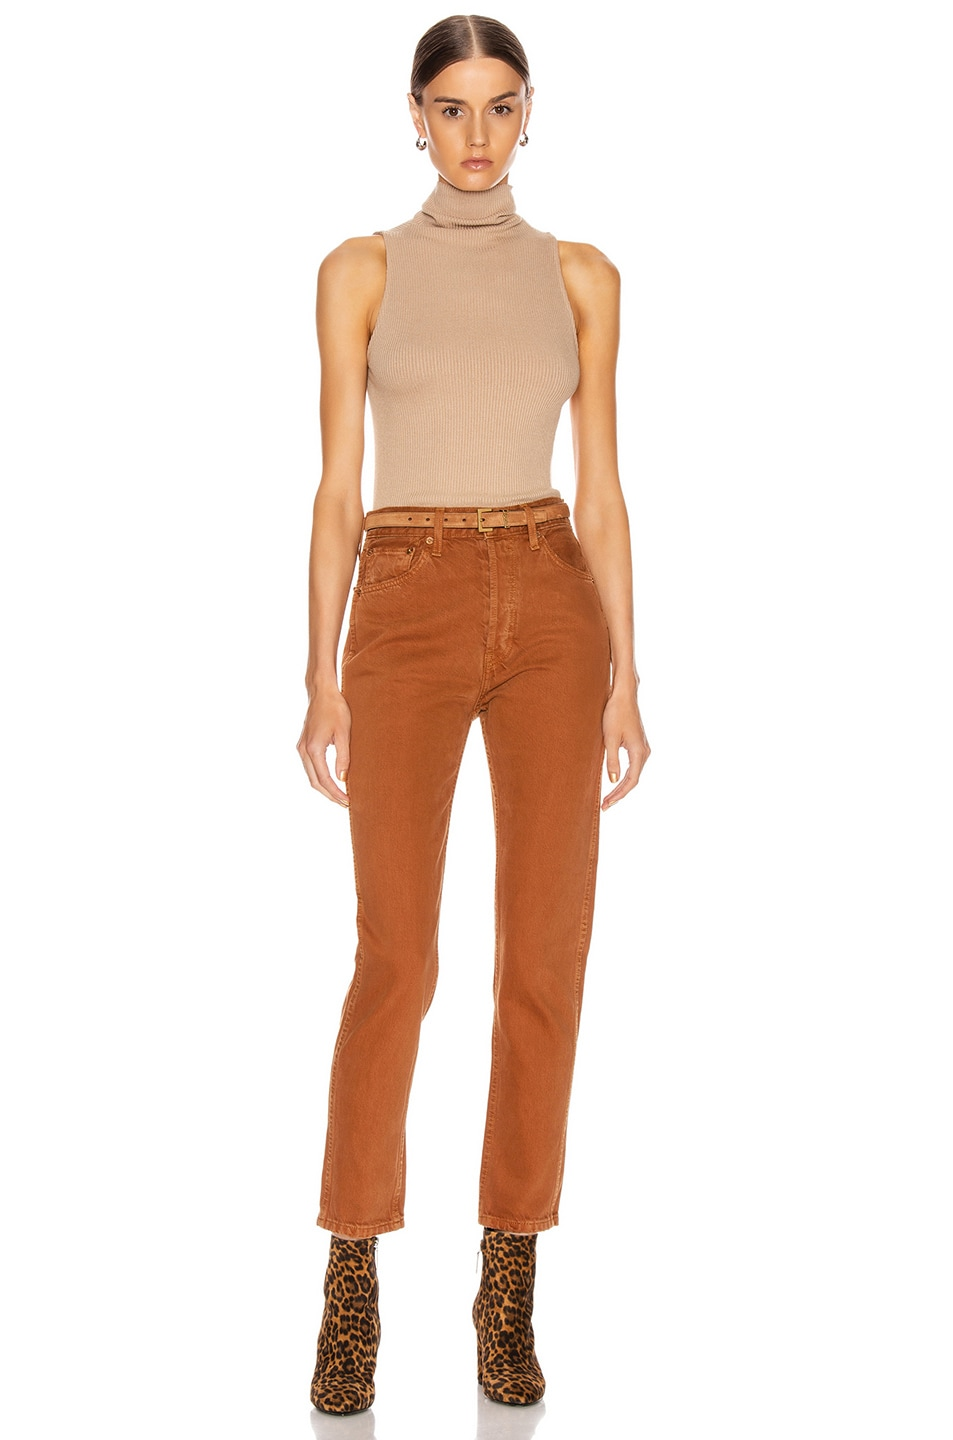 Image 4 of Enza Costa for FWRD Rib Sleeveless Turtleneck in Sandstone